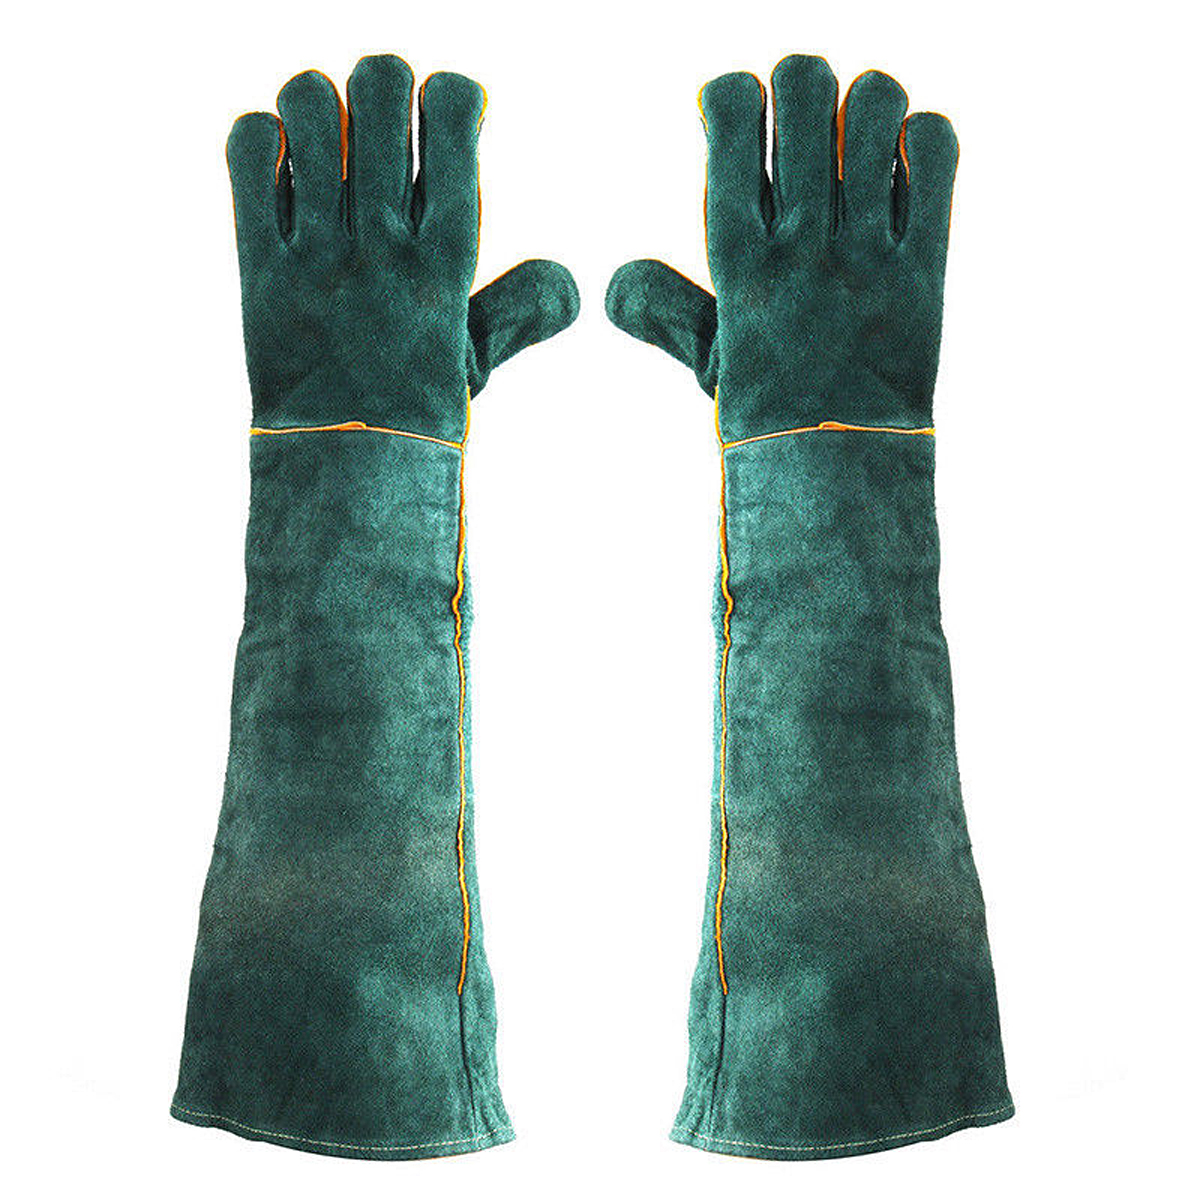 Fireplace Gloves Thicken Extreme Heat Resistant Working Protect Gloves Cut-Proof Labor Gloves Welders Gauntlets 60CM Leather Welding Gloves with Extra Long Sleeves Gardening Gloves